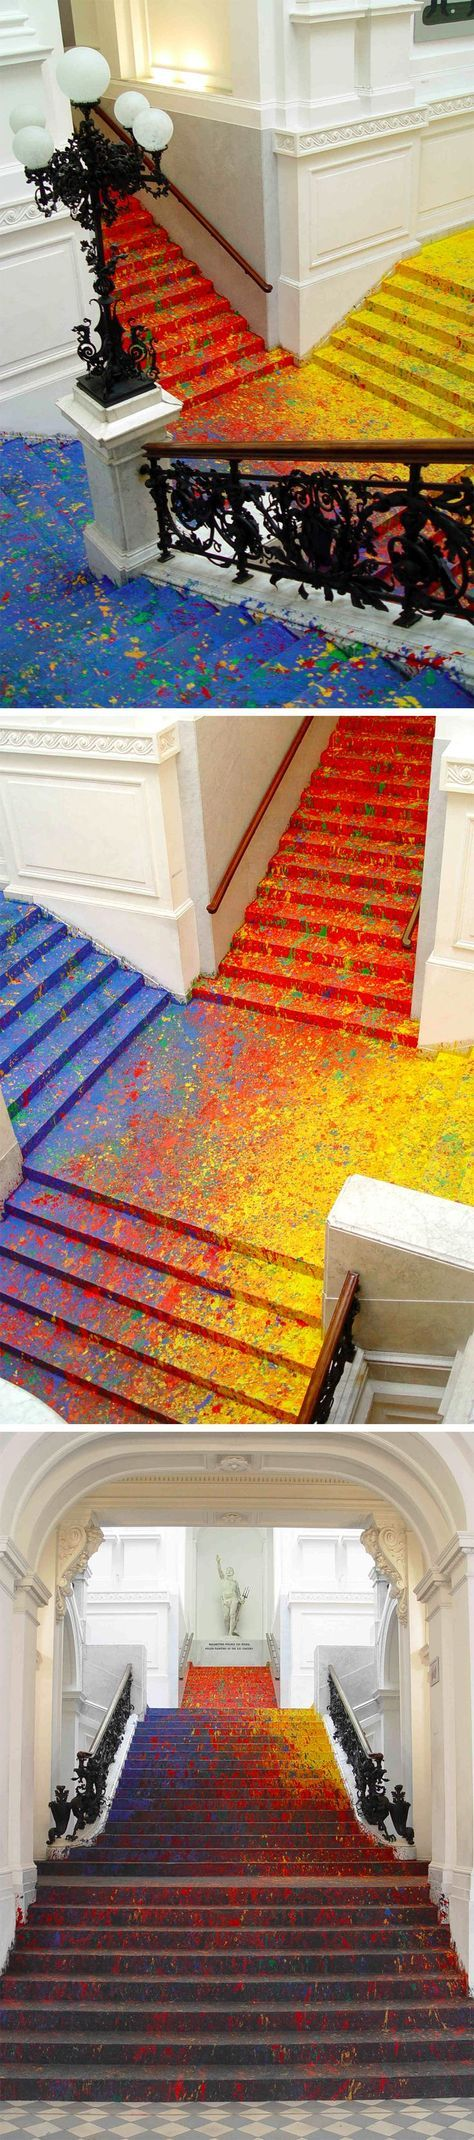 Artist Leon Tarasewicz Covers the Poland National Gallery's Great Hall Staircase in Splatter Paint